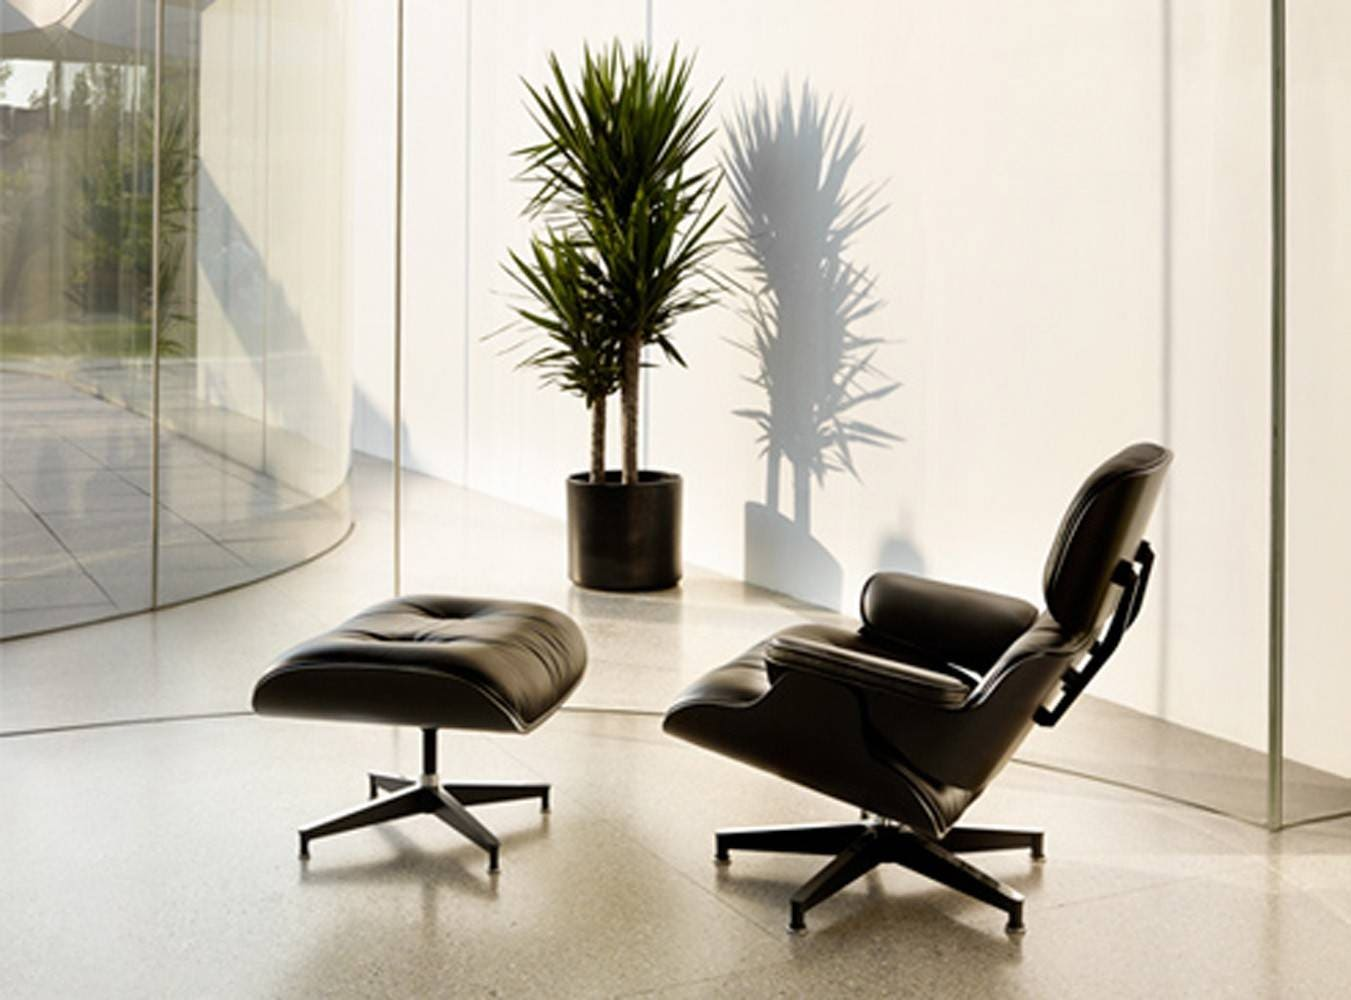 Eames lounge chair in room -  Eames Lounge Chair Ebony 1